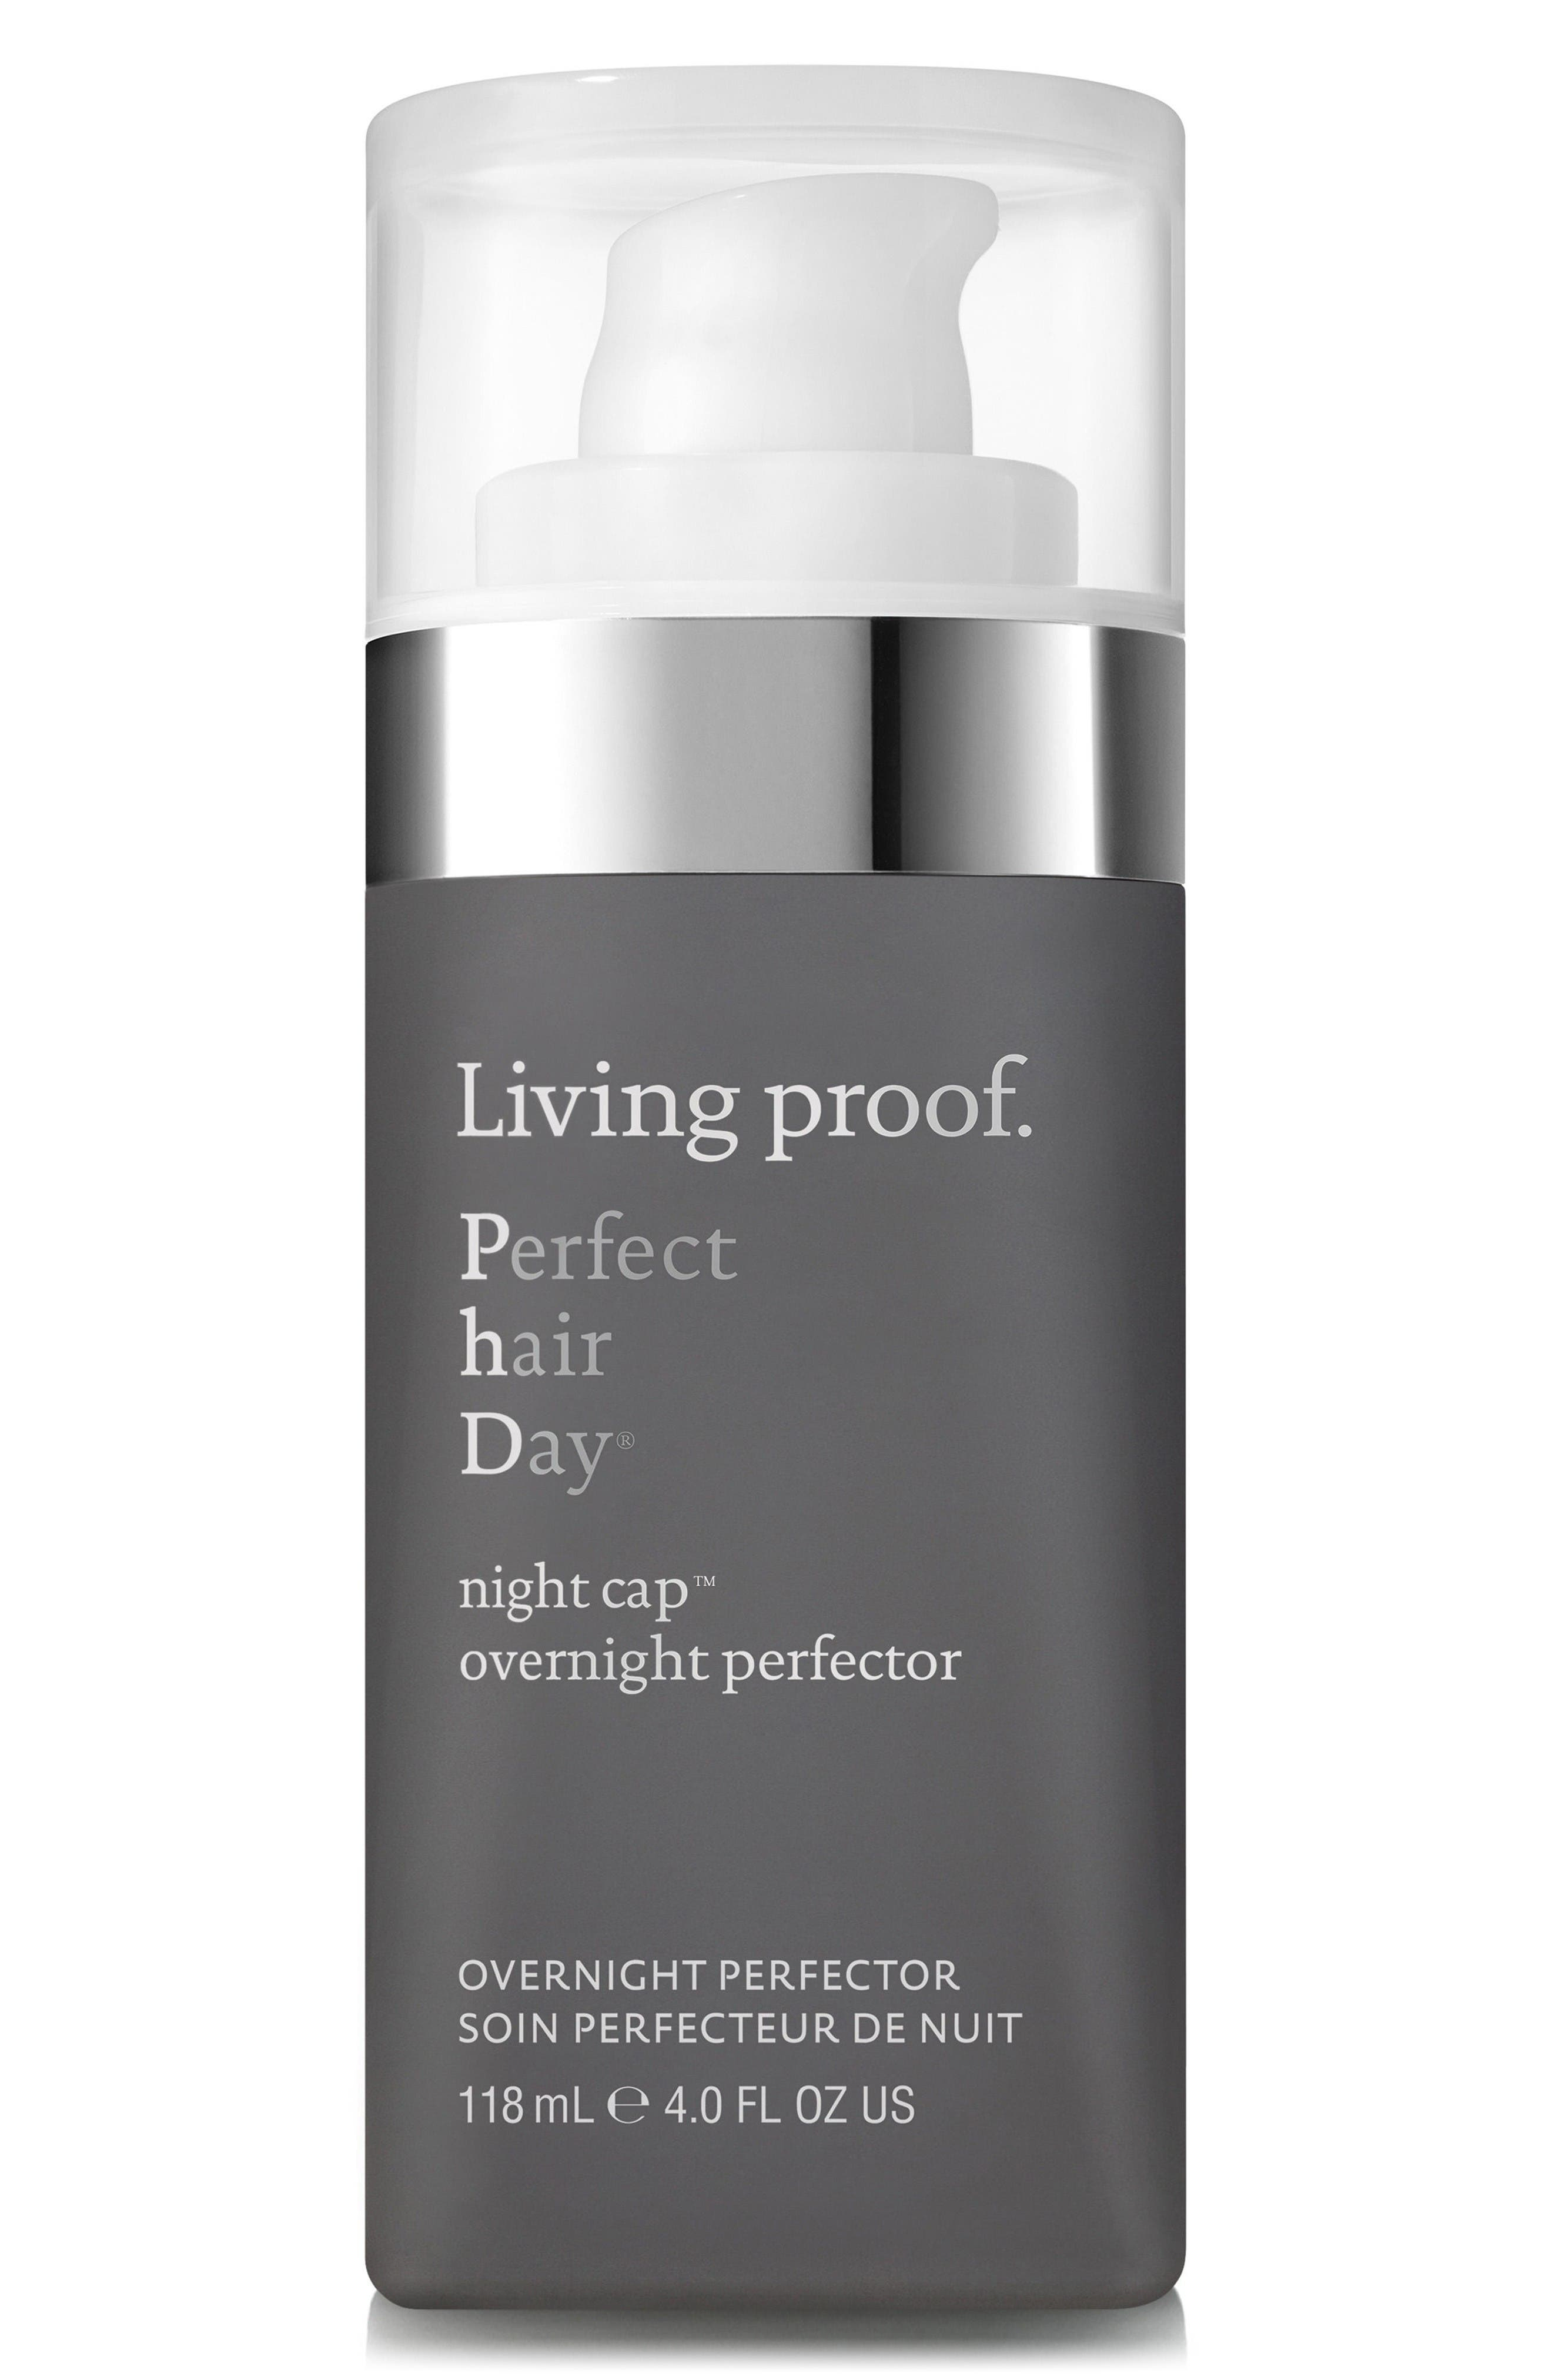 Living proof® Perfect hair Day™ Night Cap Perfector